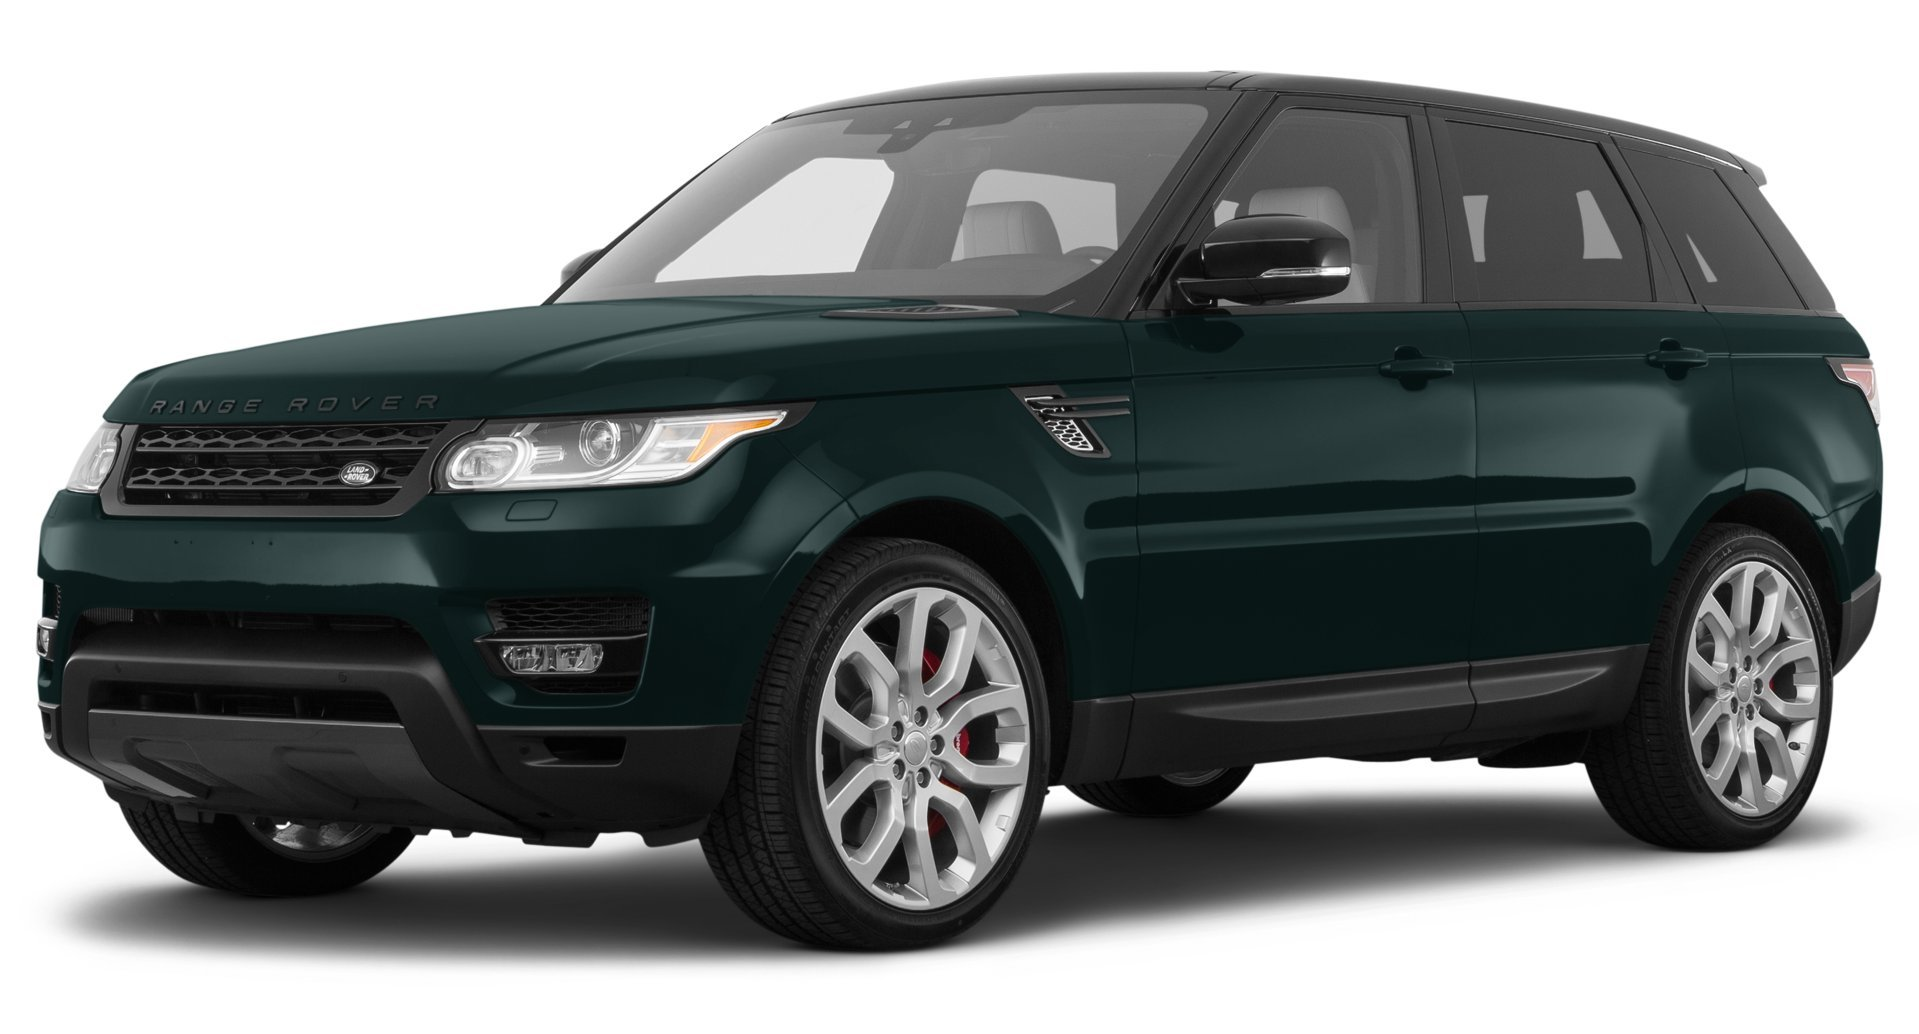 2017 land rover range rover sport reviews images and specs vehicles. Black Bedroom Furniture Sets. Home Design Ideas